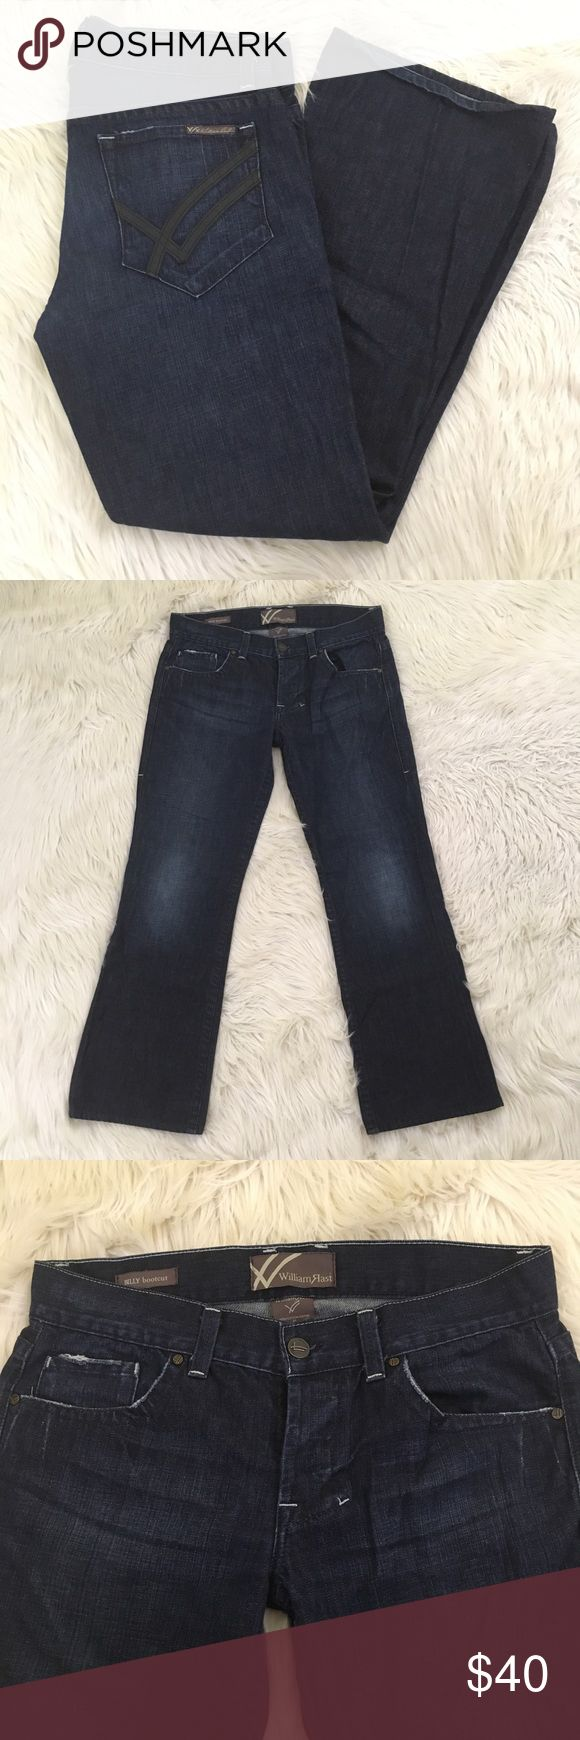 "William Rast Mens Size 34 Billy Bootcut Jeans William Rast Mens Size 34 Billy Bootcut Jeans With Button Fly and in Dark Wash.   Slightly Distressed.   Excellent condition no flaws.  Waist flat: 18.5""  Inseam: 32""  Rise: 10""  📌NO lowball offers 📌NO modeling 📌NO trades  Come check out the rest of our closet! We have various brands and ALL different sizes! William Rast Jeans Bootcut"